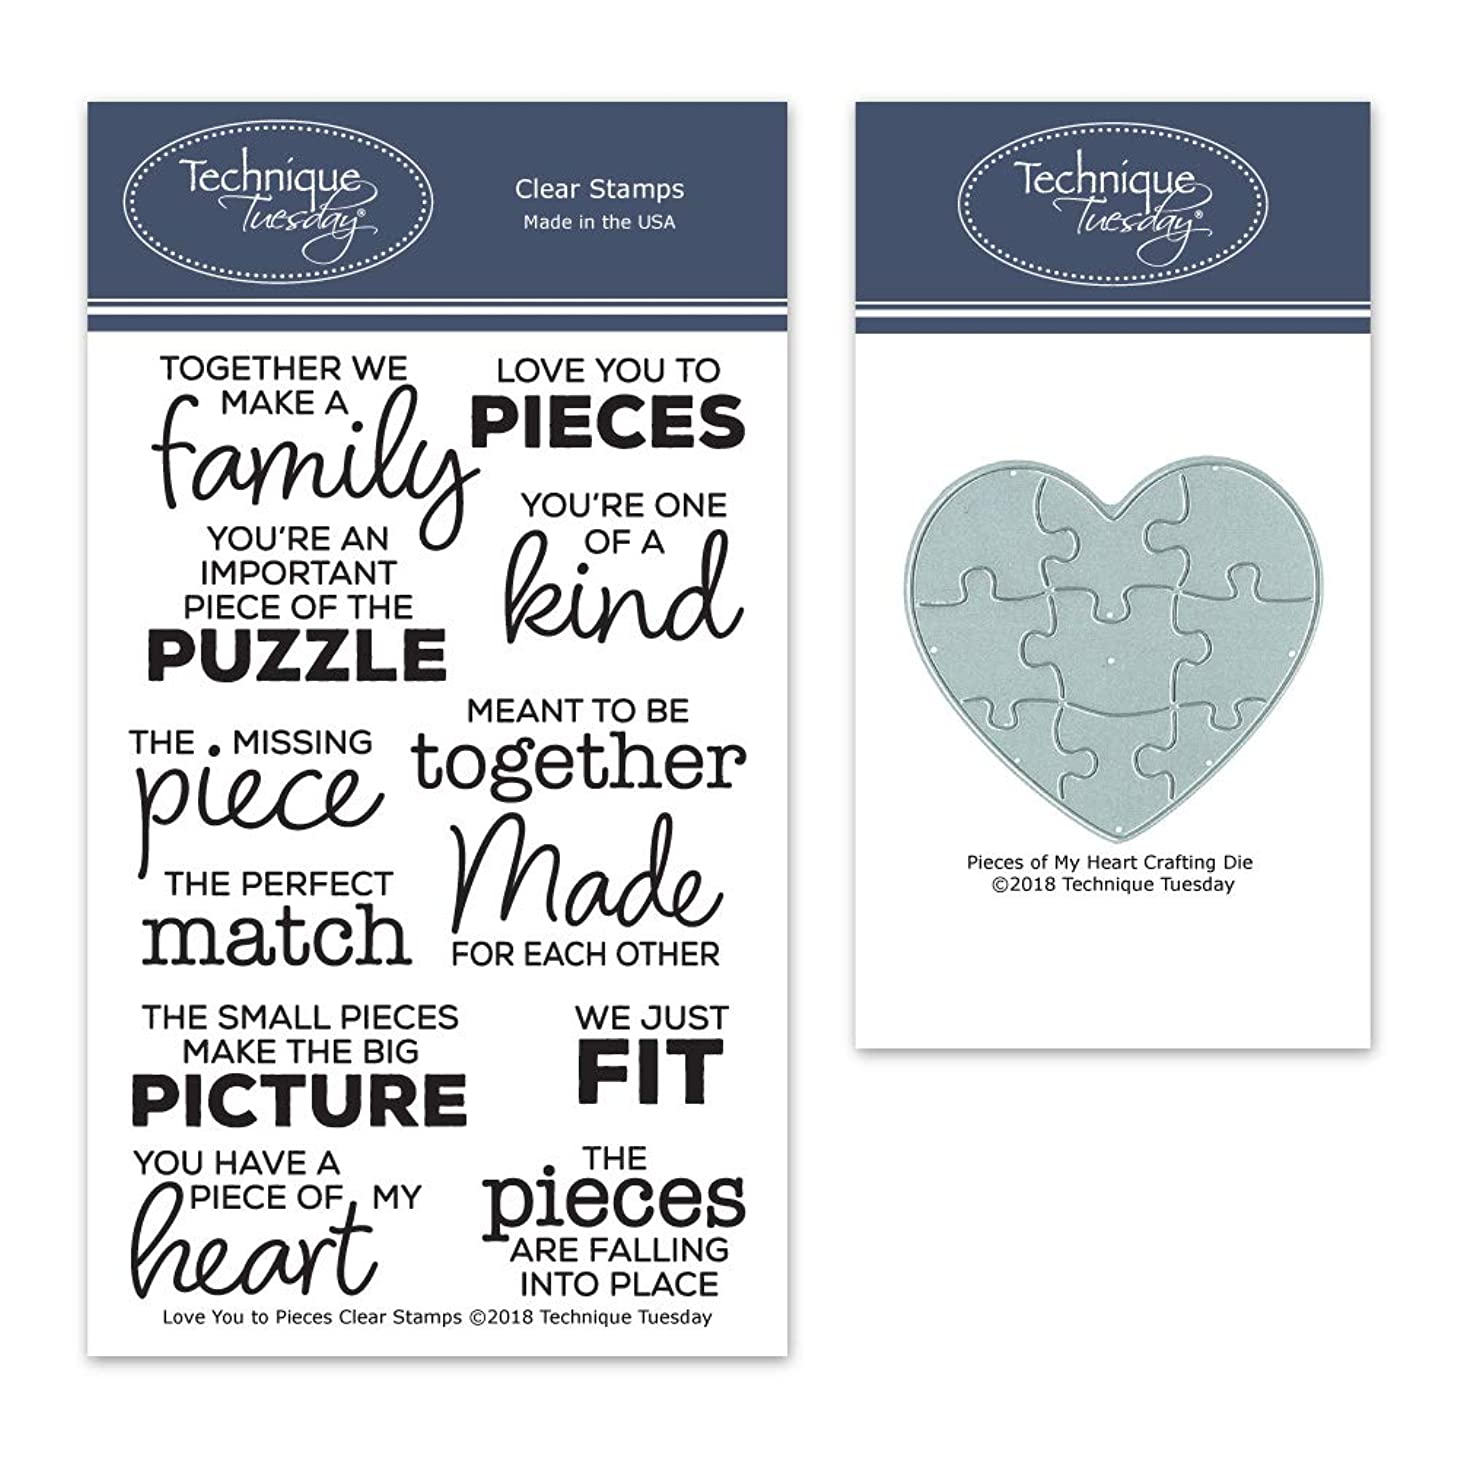 Love You to Pieces Stamp Set and Pieces of My Heart Crafting Die Bundle